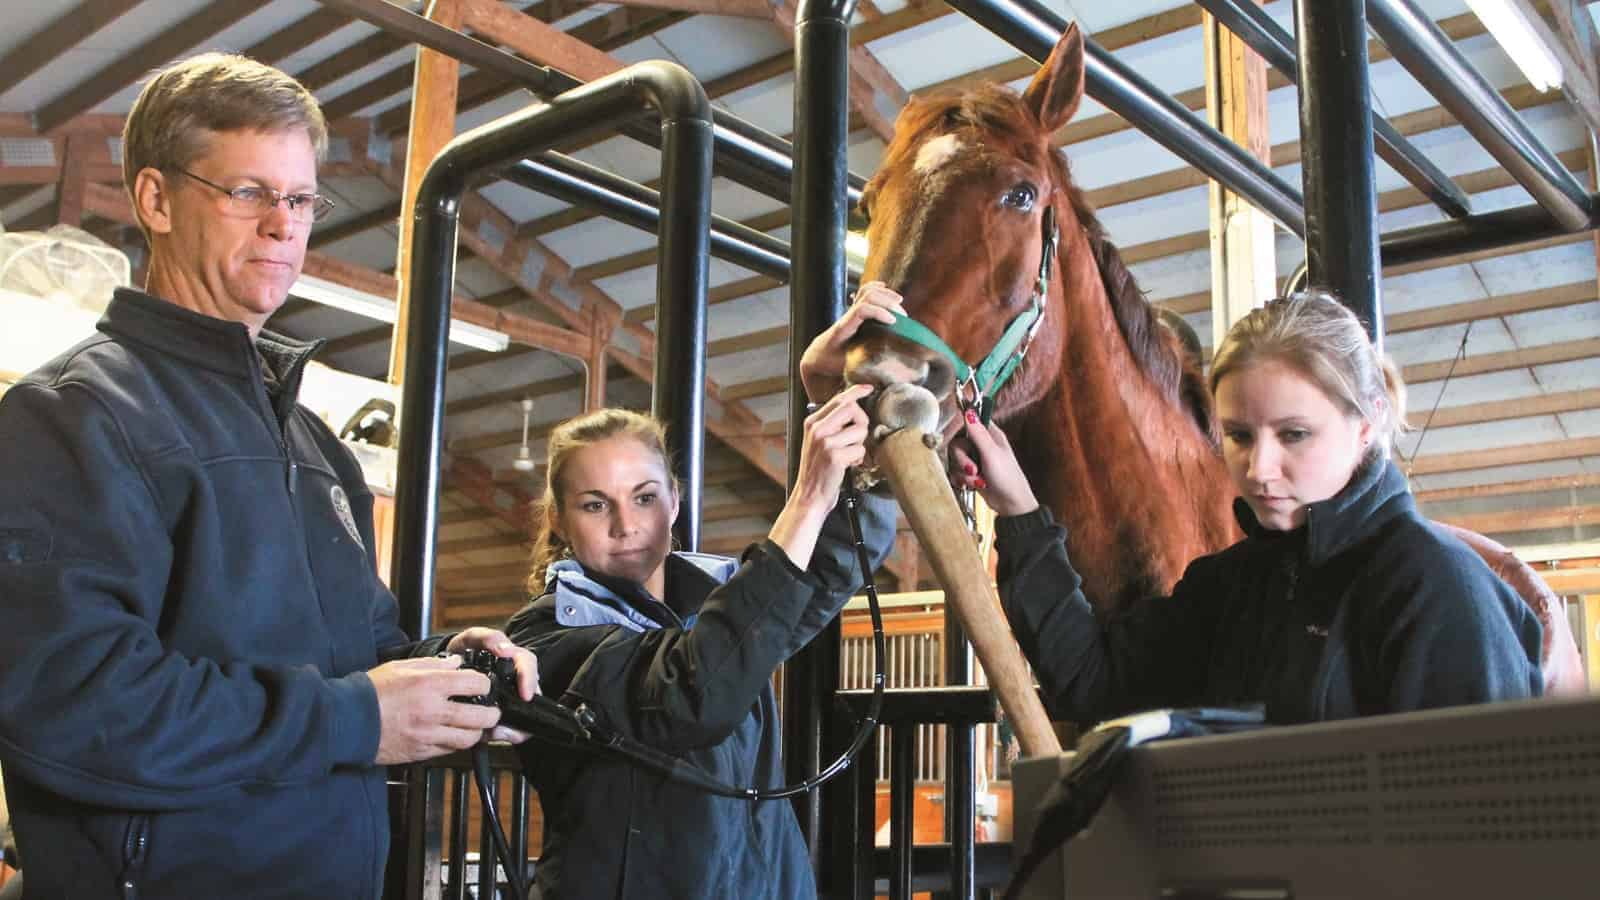 Veterinarians Discuss Gastric Ulcer Treatment Strategies for Horses